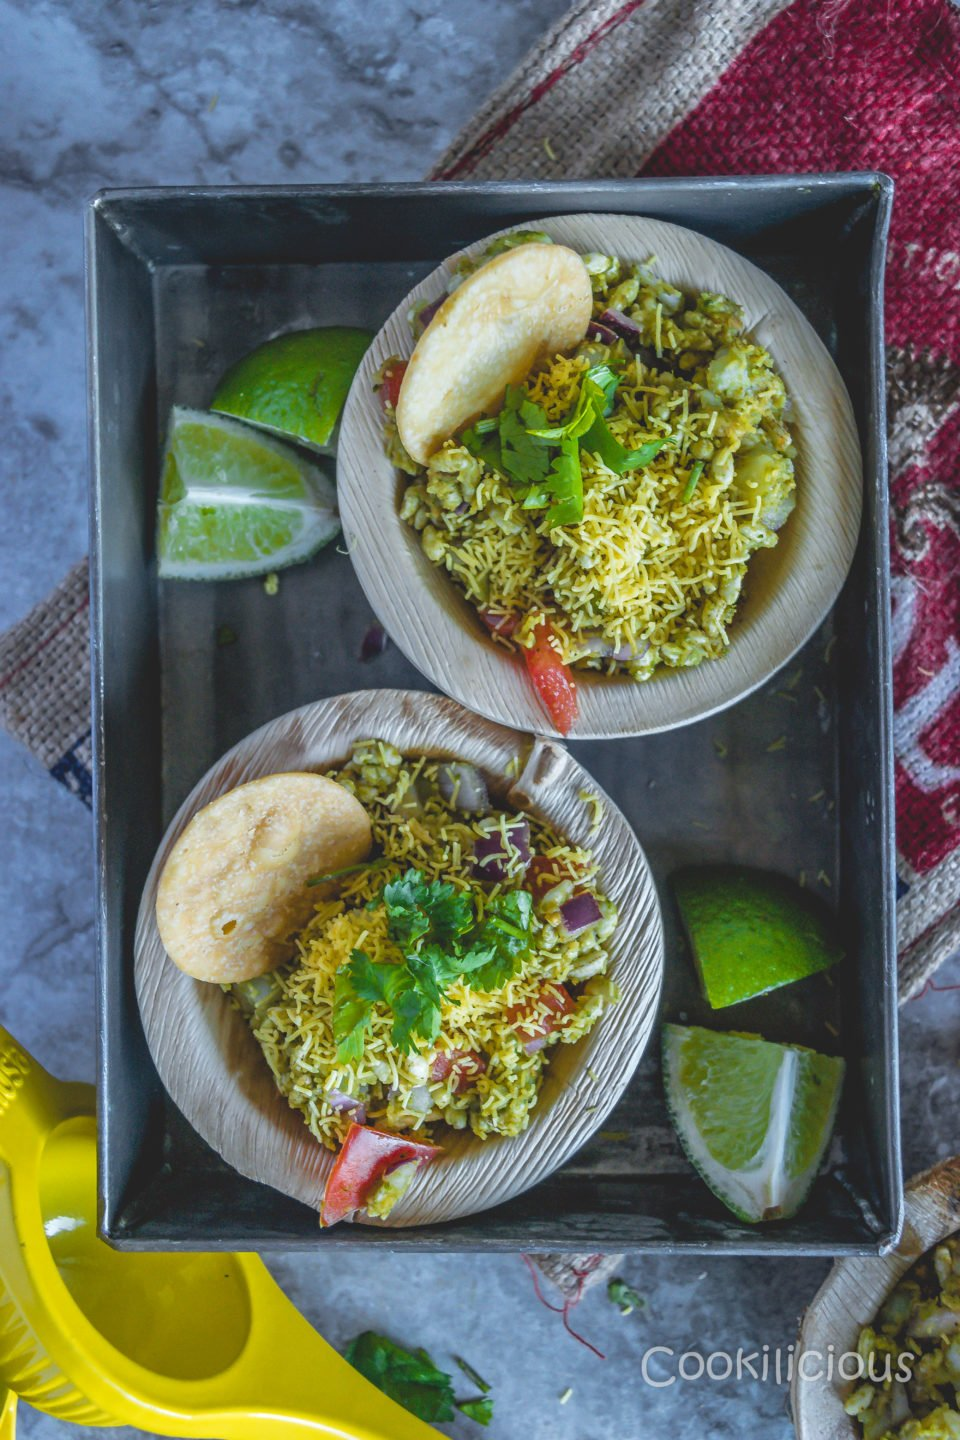 A tray with 2 bowls of bhelpuri with lemon wedges around it